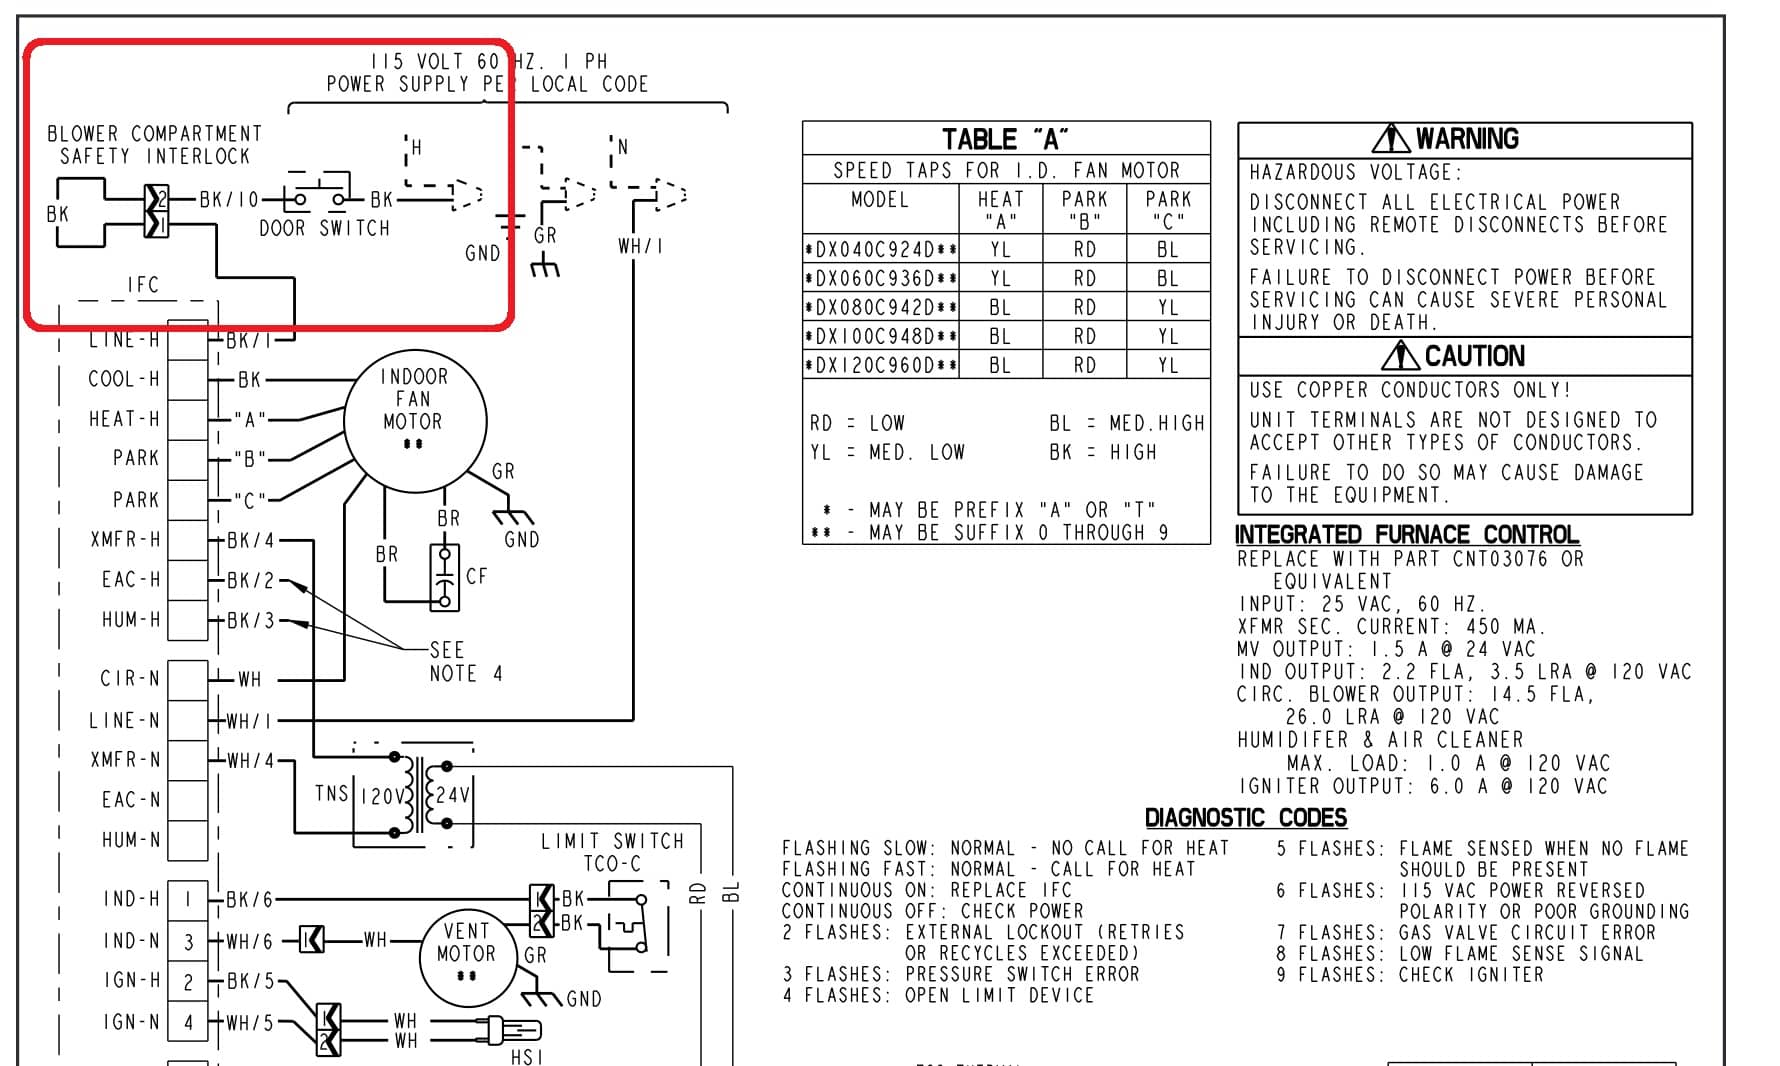 Trane_Furnace_Wiring_PARTIAL_023 trane xr90 wiring diagram trane xr90 owners manual \u2022 wiring trane wiring diagram thermostat at alyssarenee.co